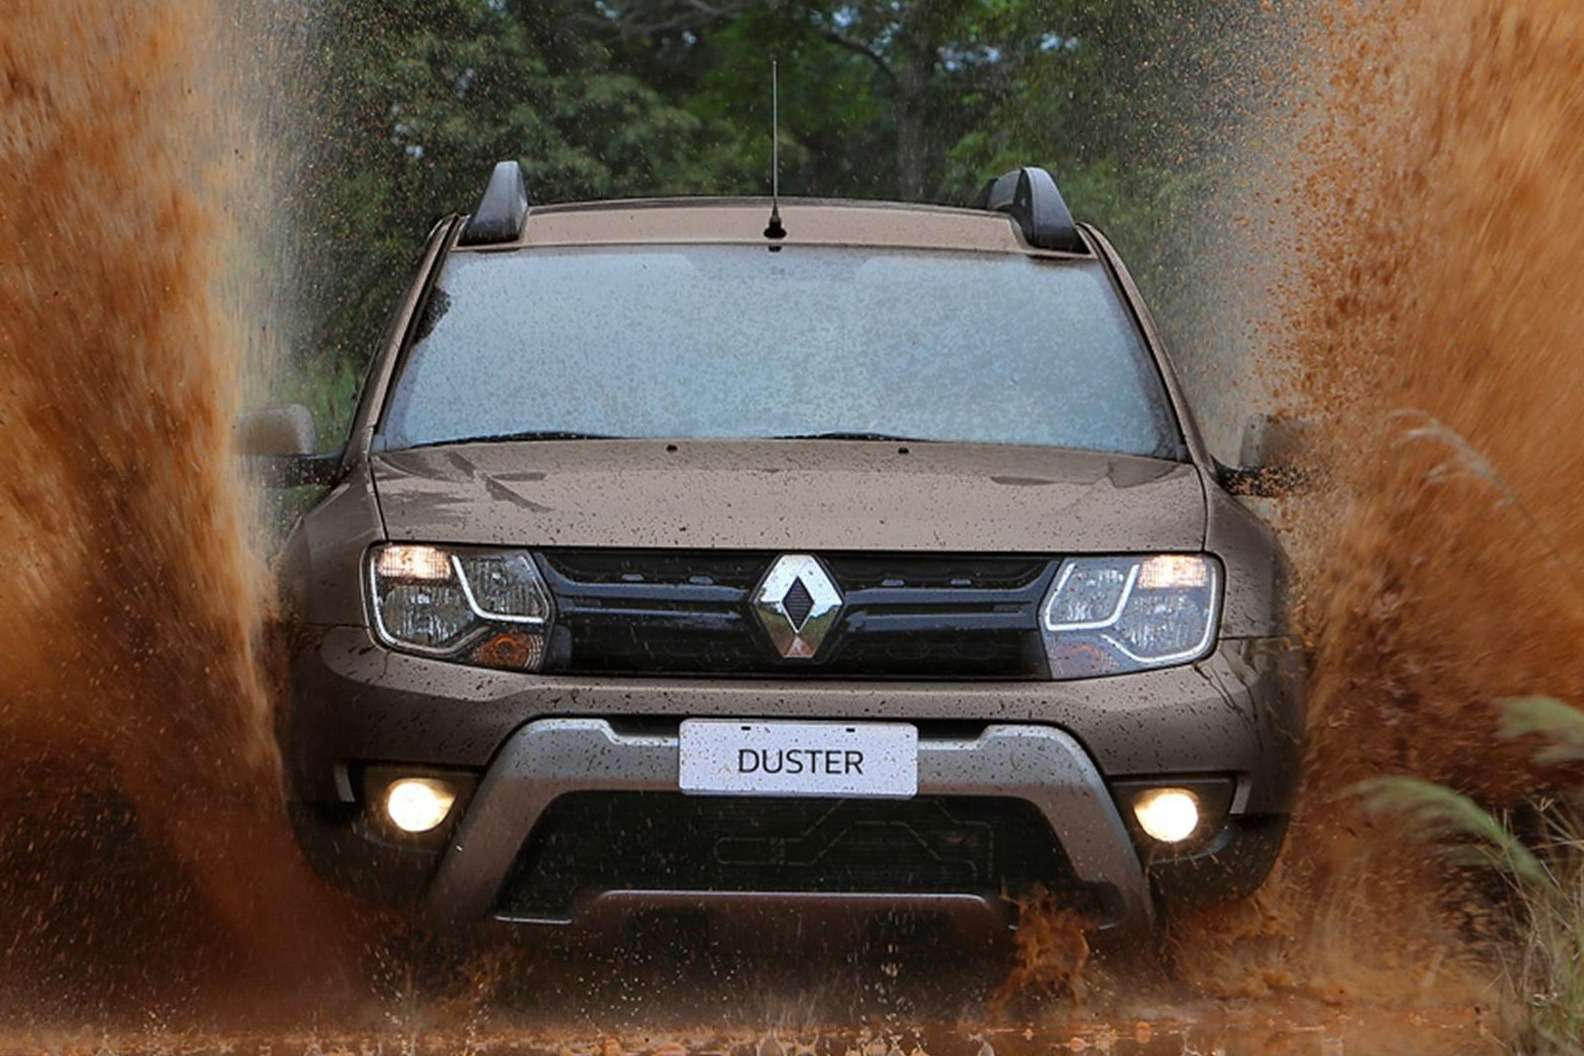 2016-renault-duster-launched-with-new-look-better-economy-in-brazil-photo-gallery_2